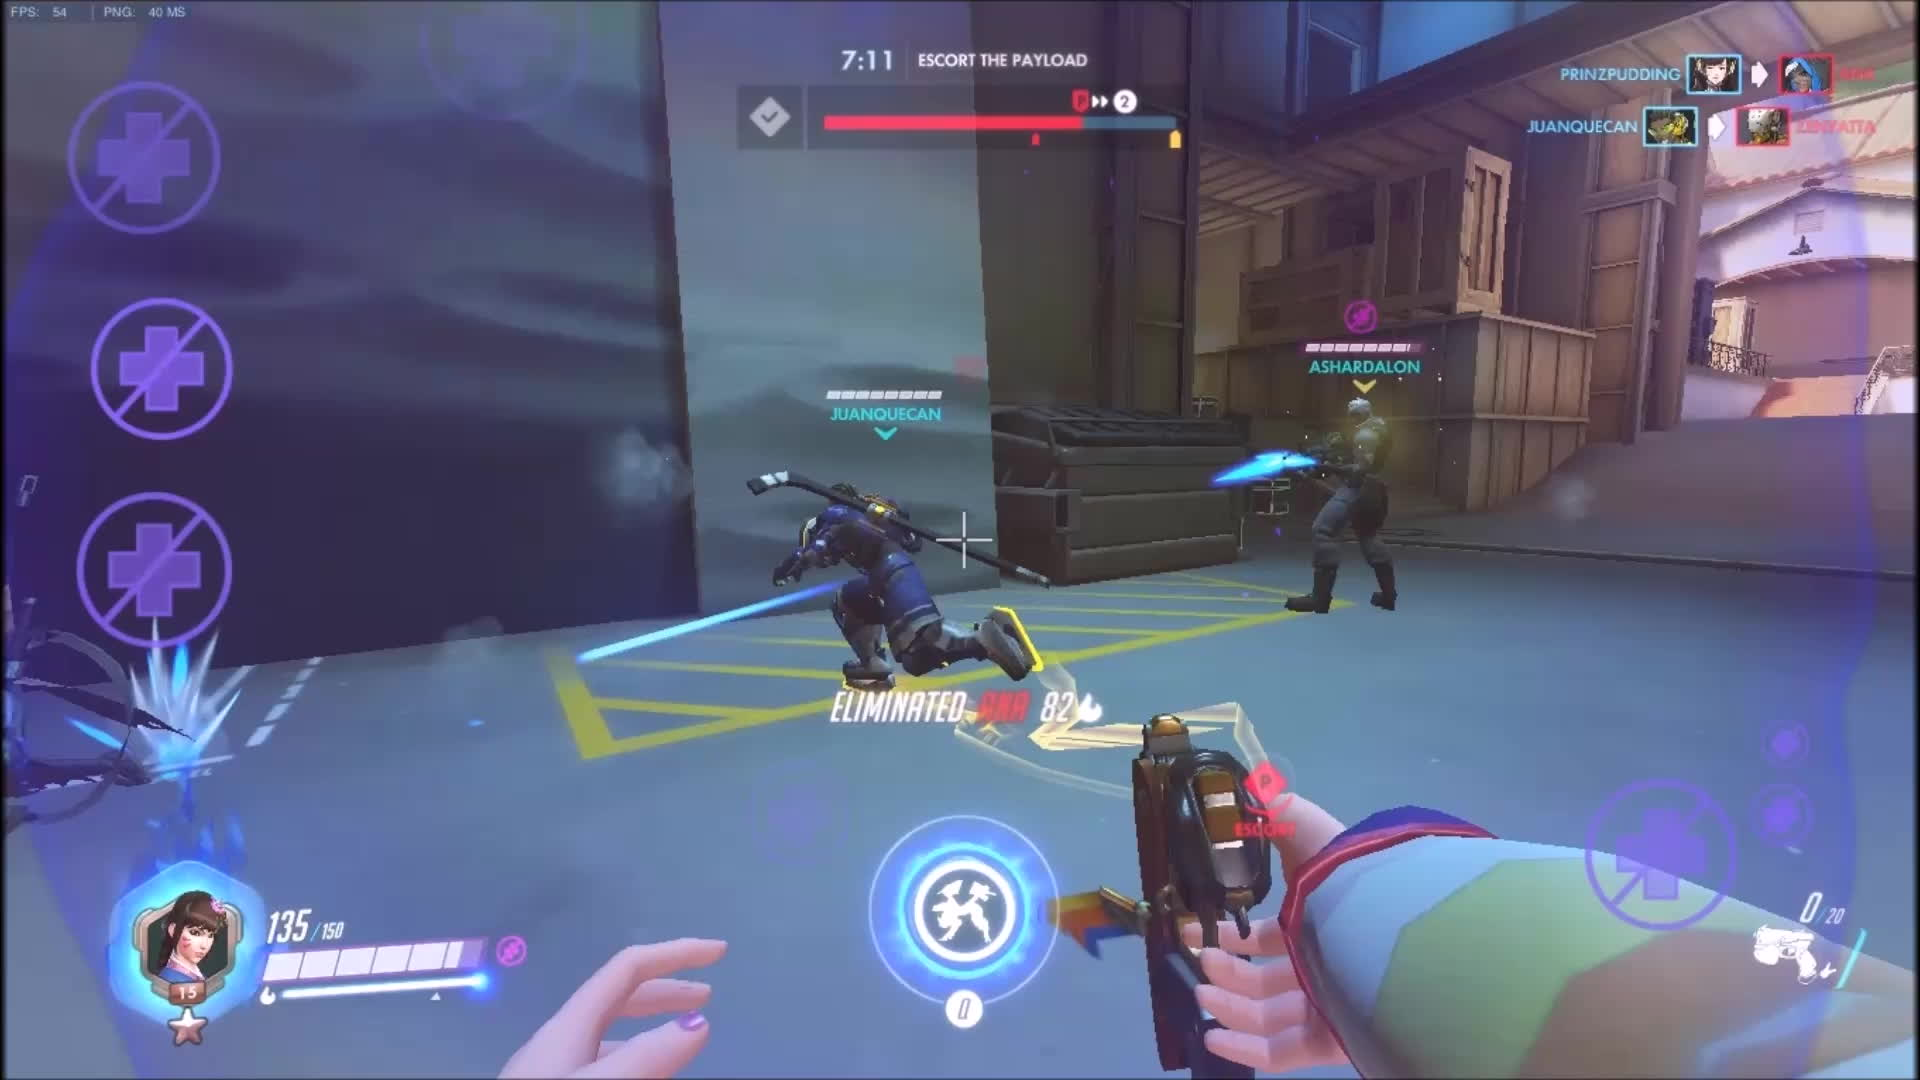 Overwatchmemes, combinedgifs, titanfall, Somebody playing as Talon Assualt Tank from Retribution in competitive (Korean servers) (reddit) GIFs